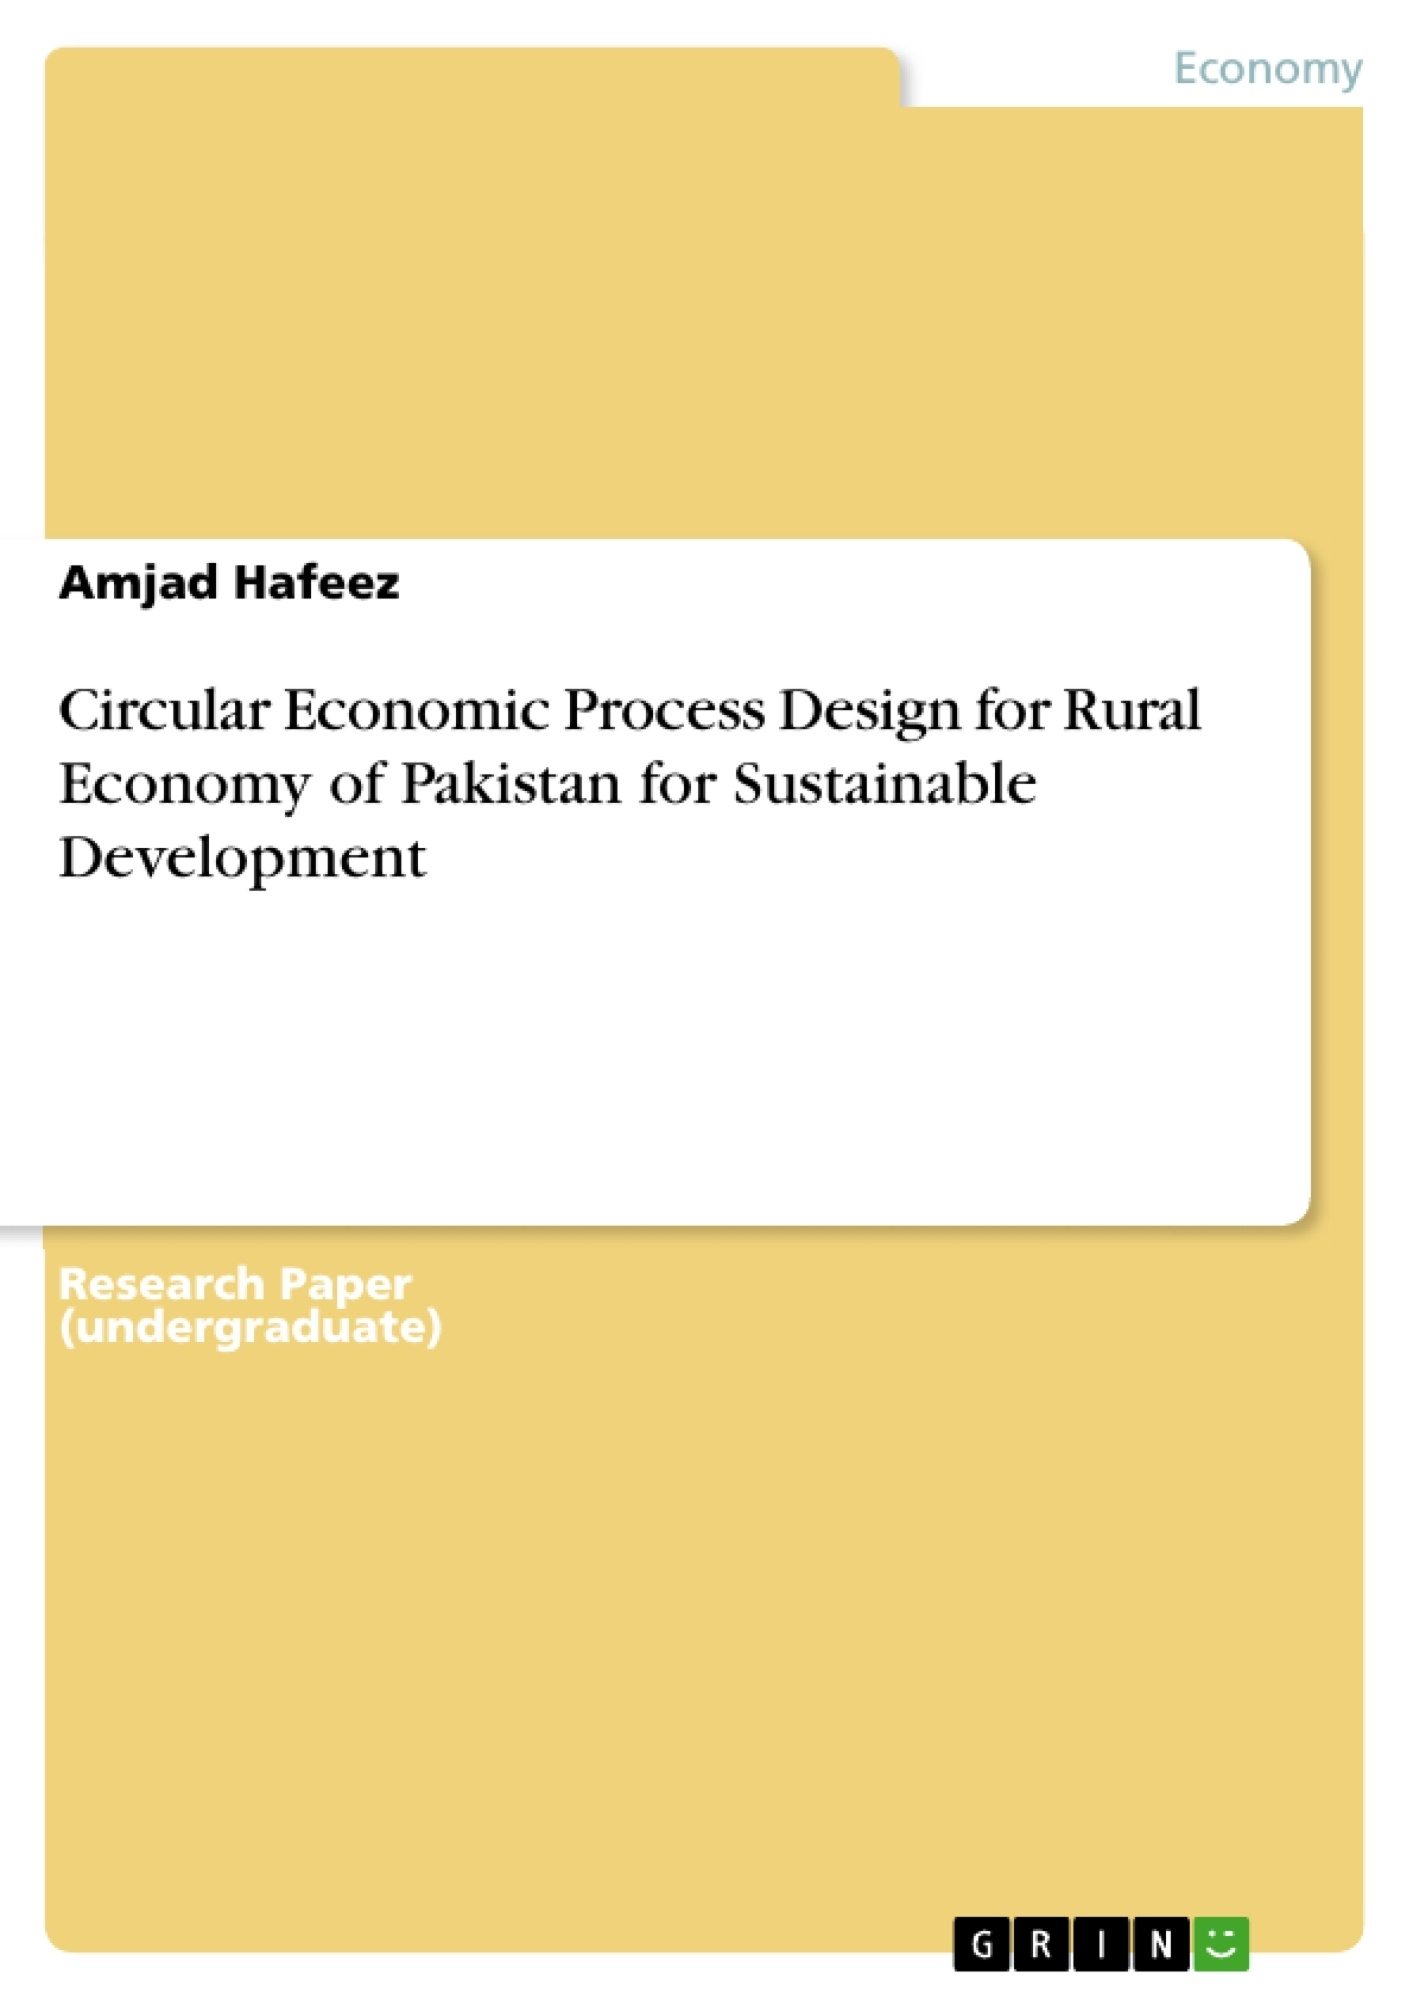 Title: Circular Economic Process Design for Rural Economy of Pakistan for Sustainable Development